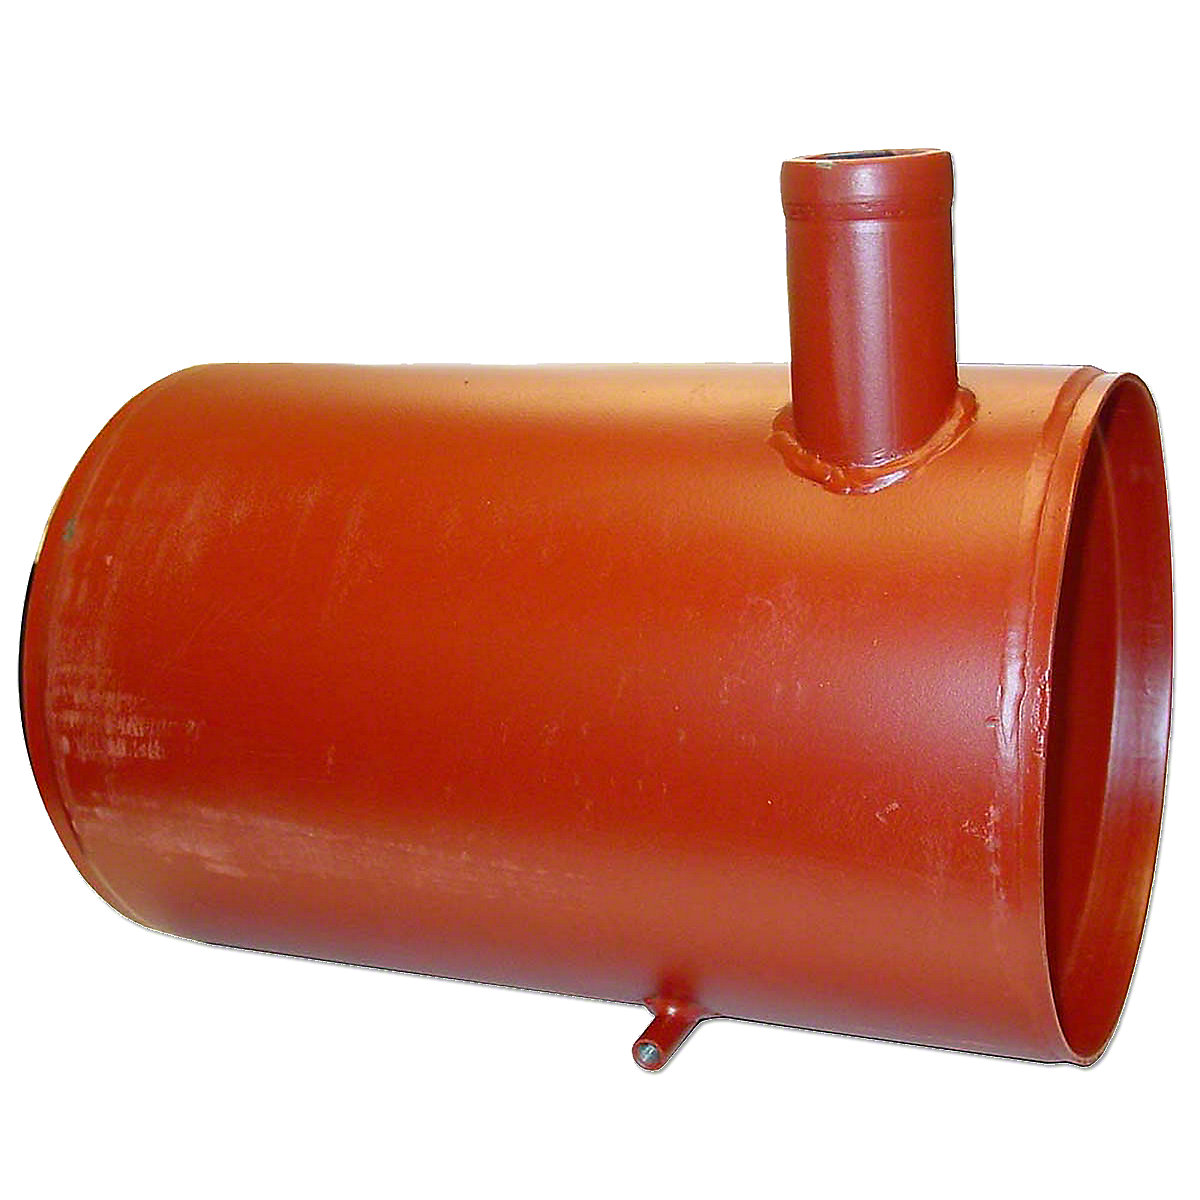 Fuel Tank For Allis Chalmers: G.